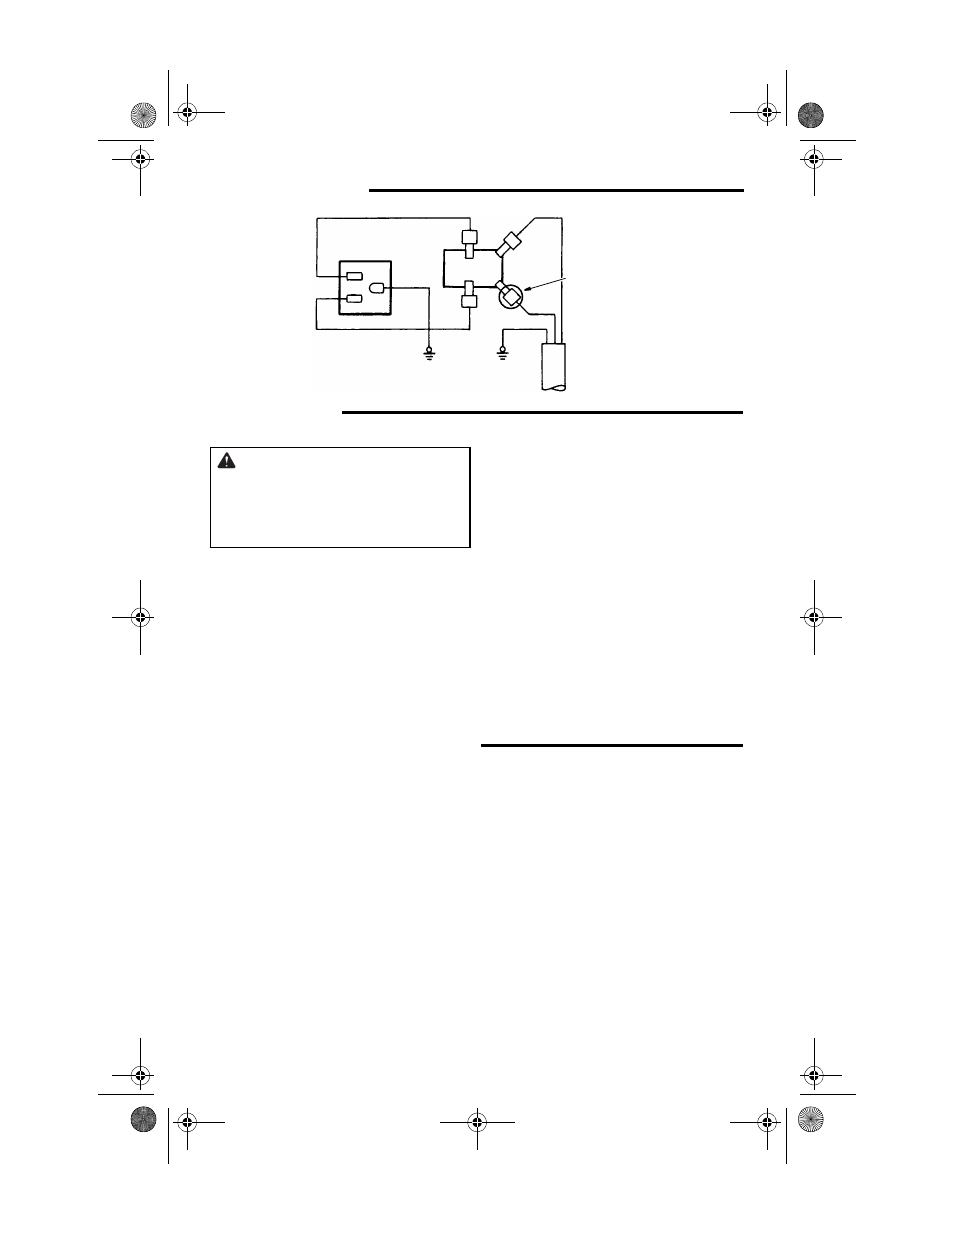 medium resolution of wiring diagram maintenance recommended accessories ridgid wl1200ls1 user manual page 47 56